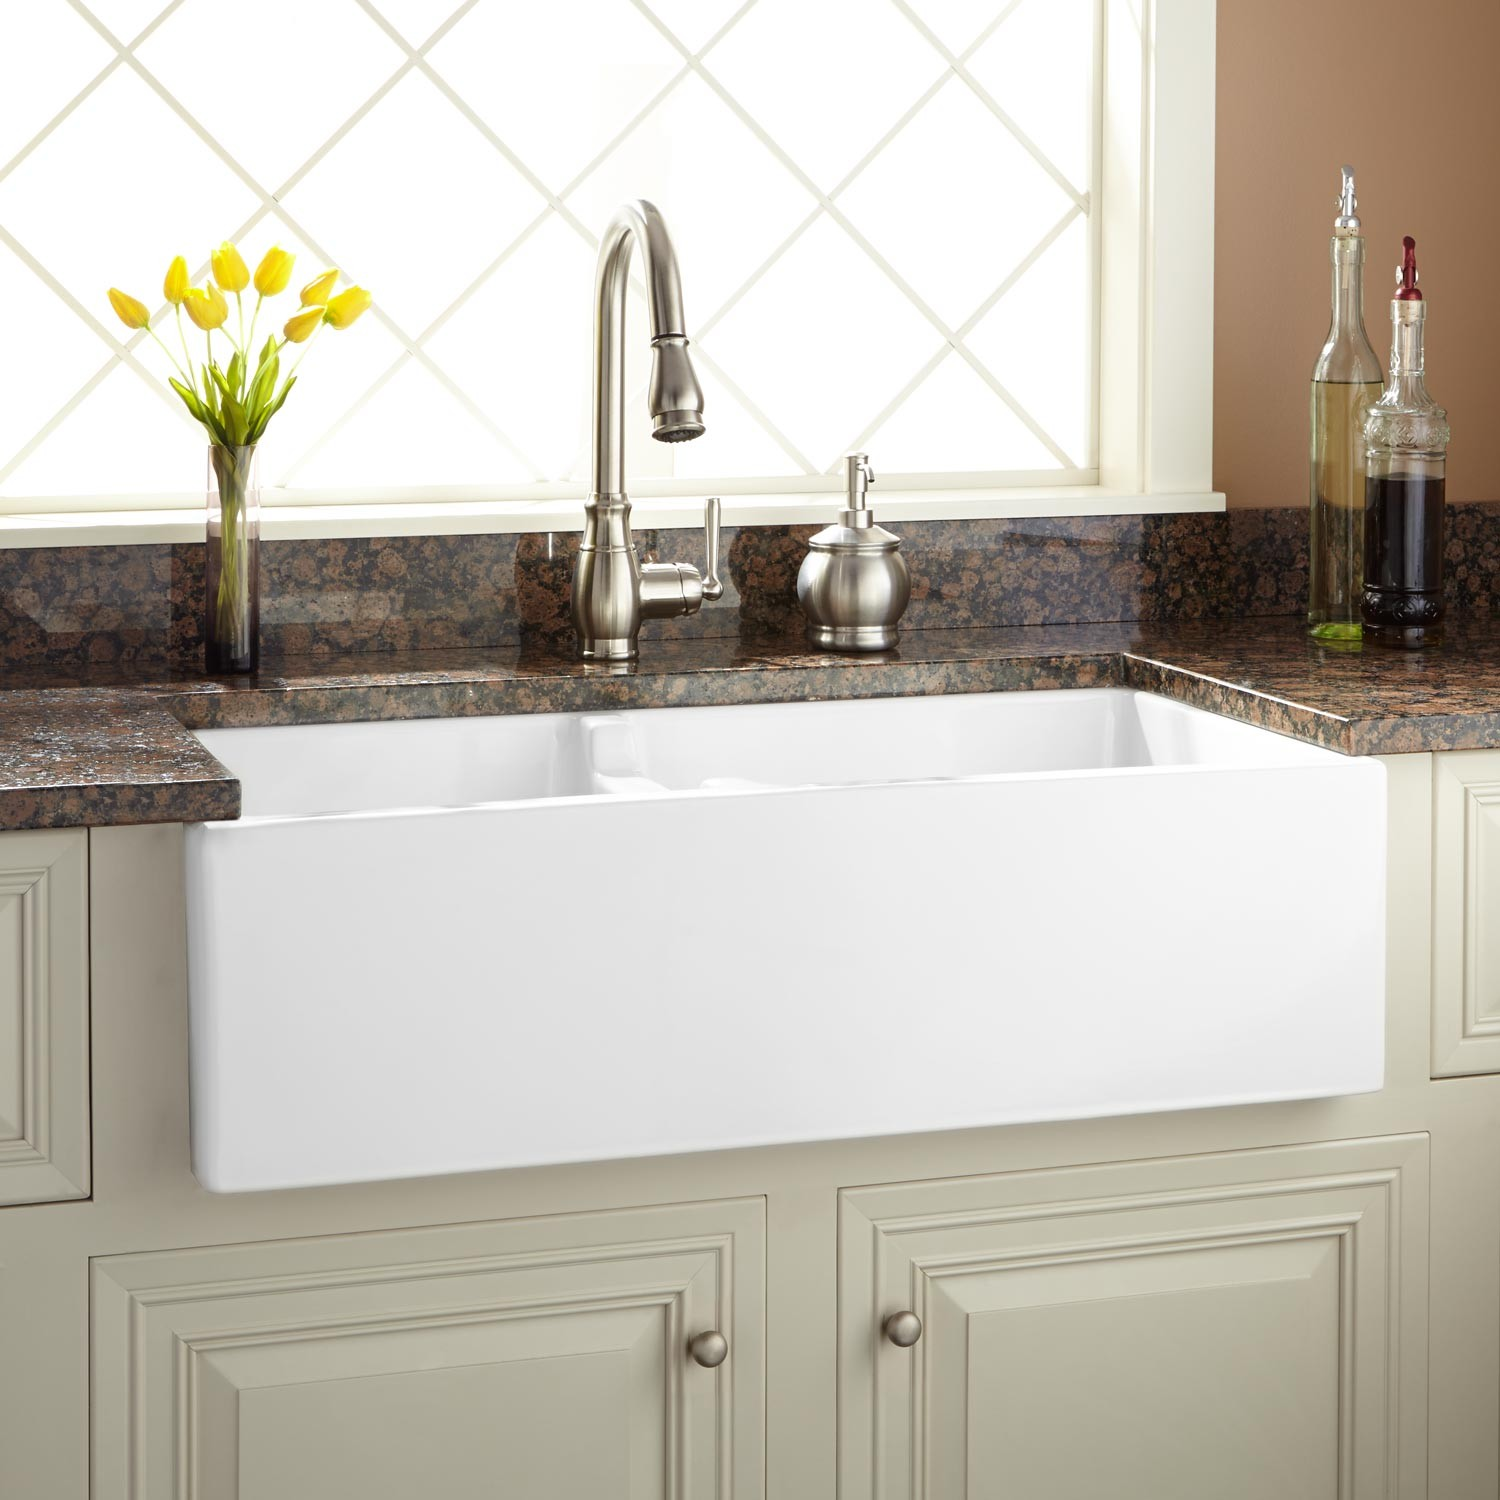 405312-l-36-risinger-farmhouse-sink-smooth-apron-white_1_2